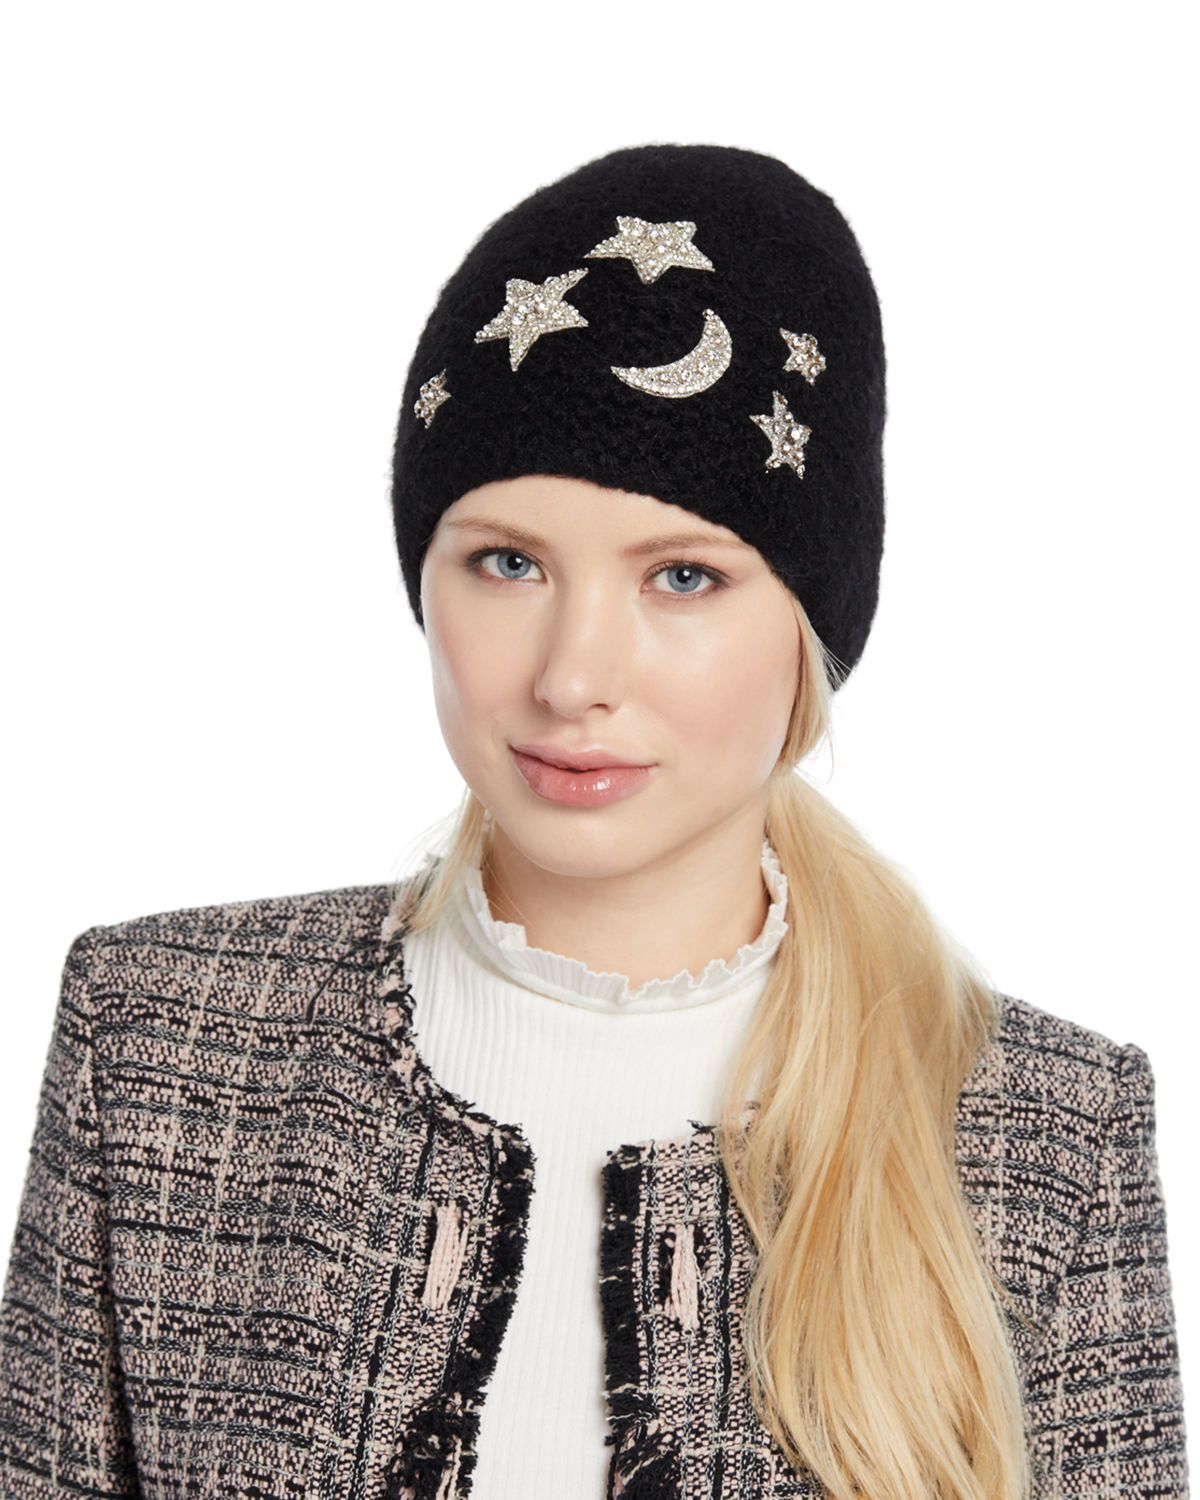 Galexia Stars & Moon Embellished Beanie Hat by Jennifer Behr